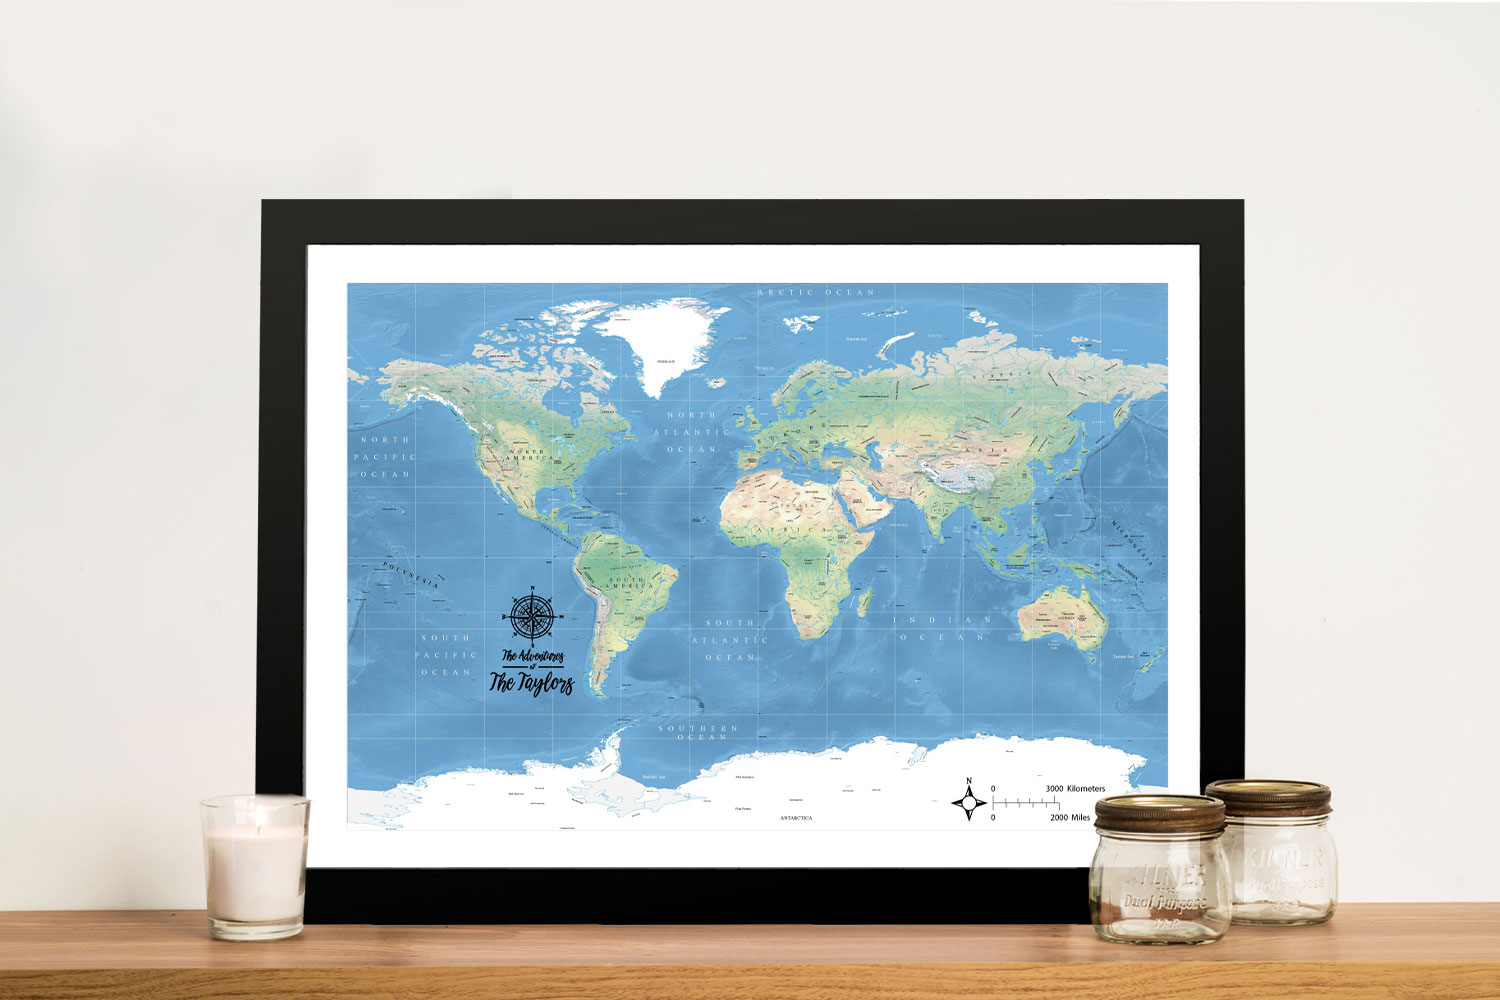 Buy a Miller Physical Classic Custom World Map | Miller Physical World Map